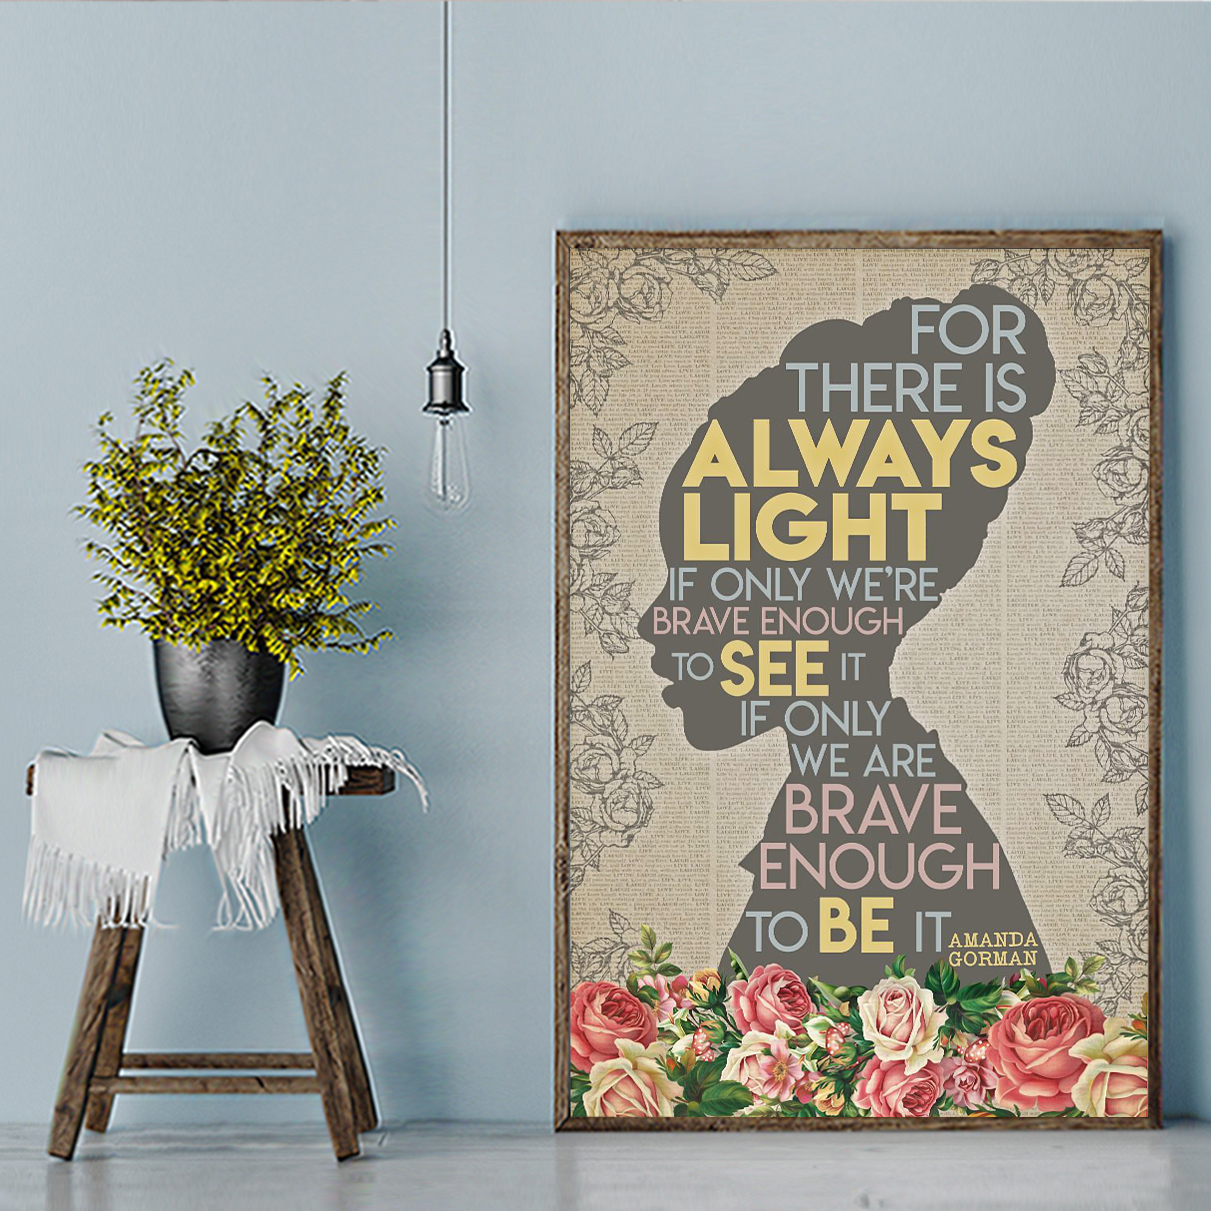 Amanda gorman for there is always light poster A1